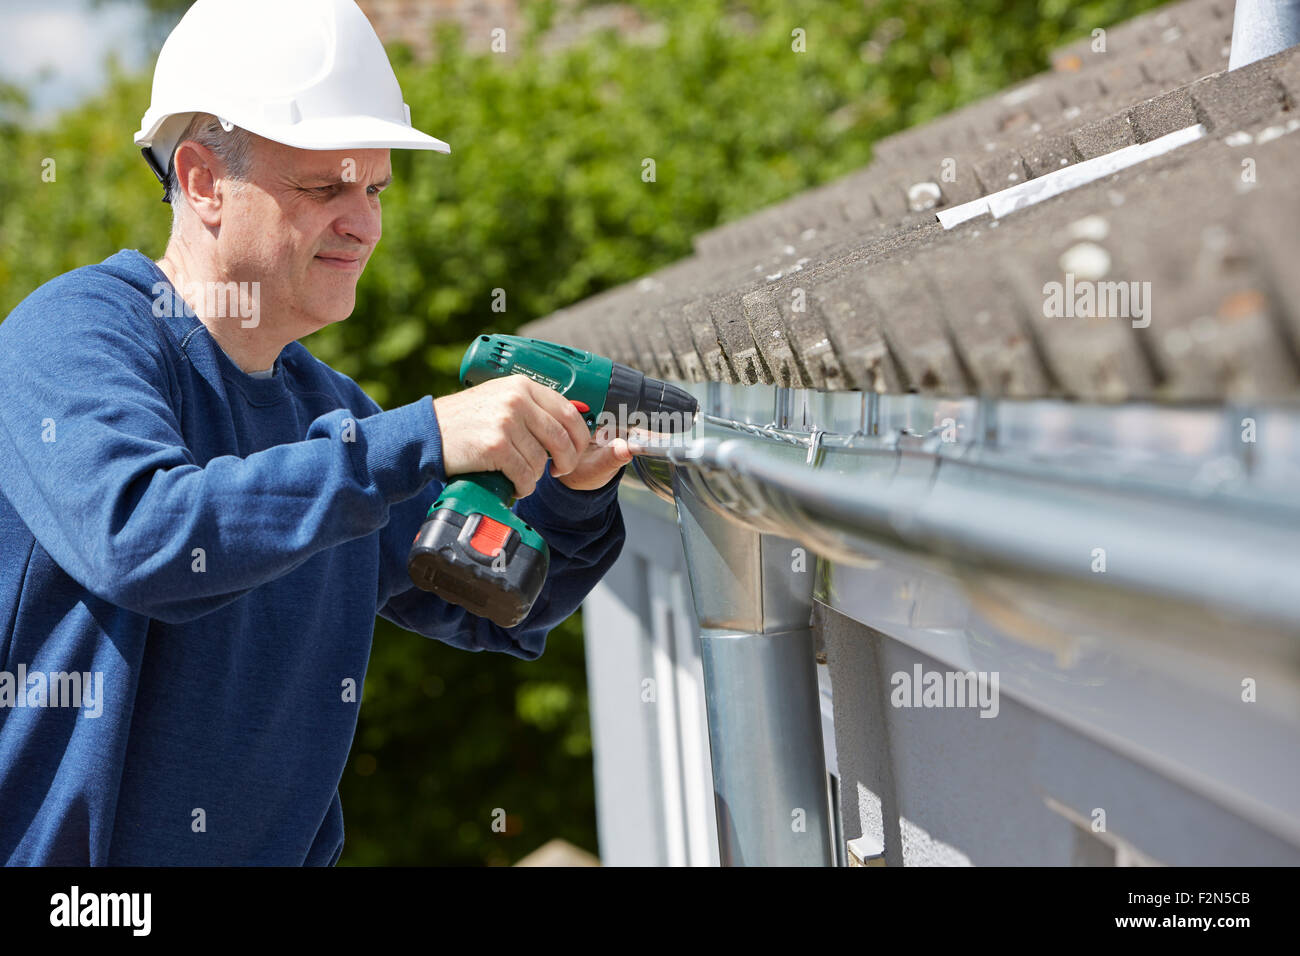 Workman Replacing Guttering On Exterior Of House - Stock Image